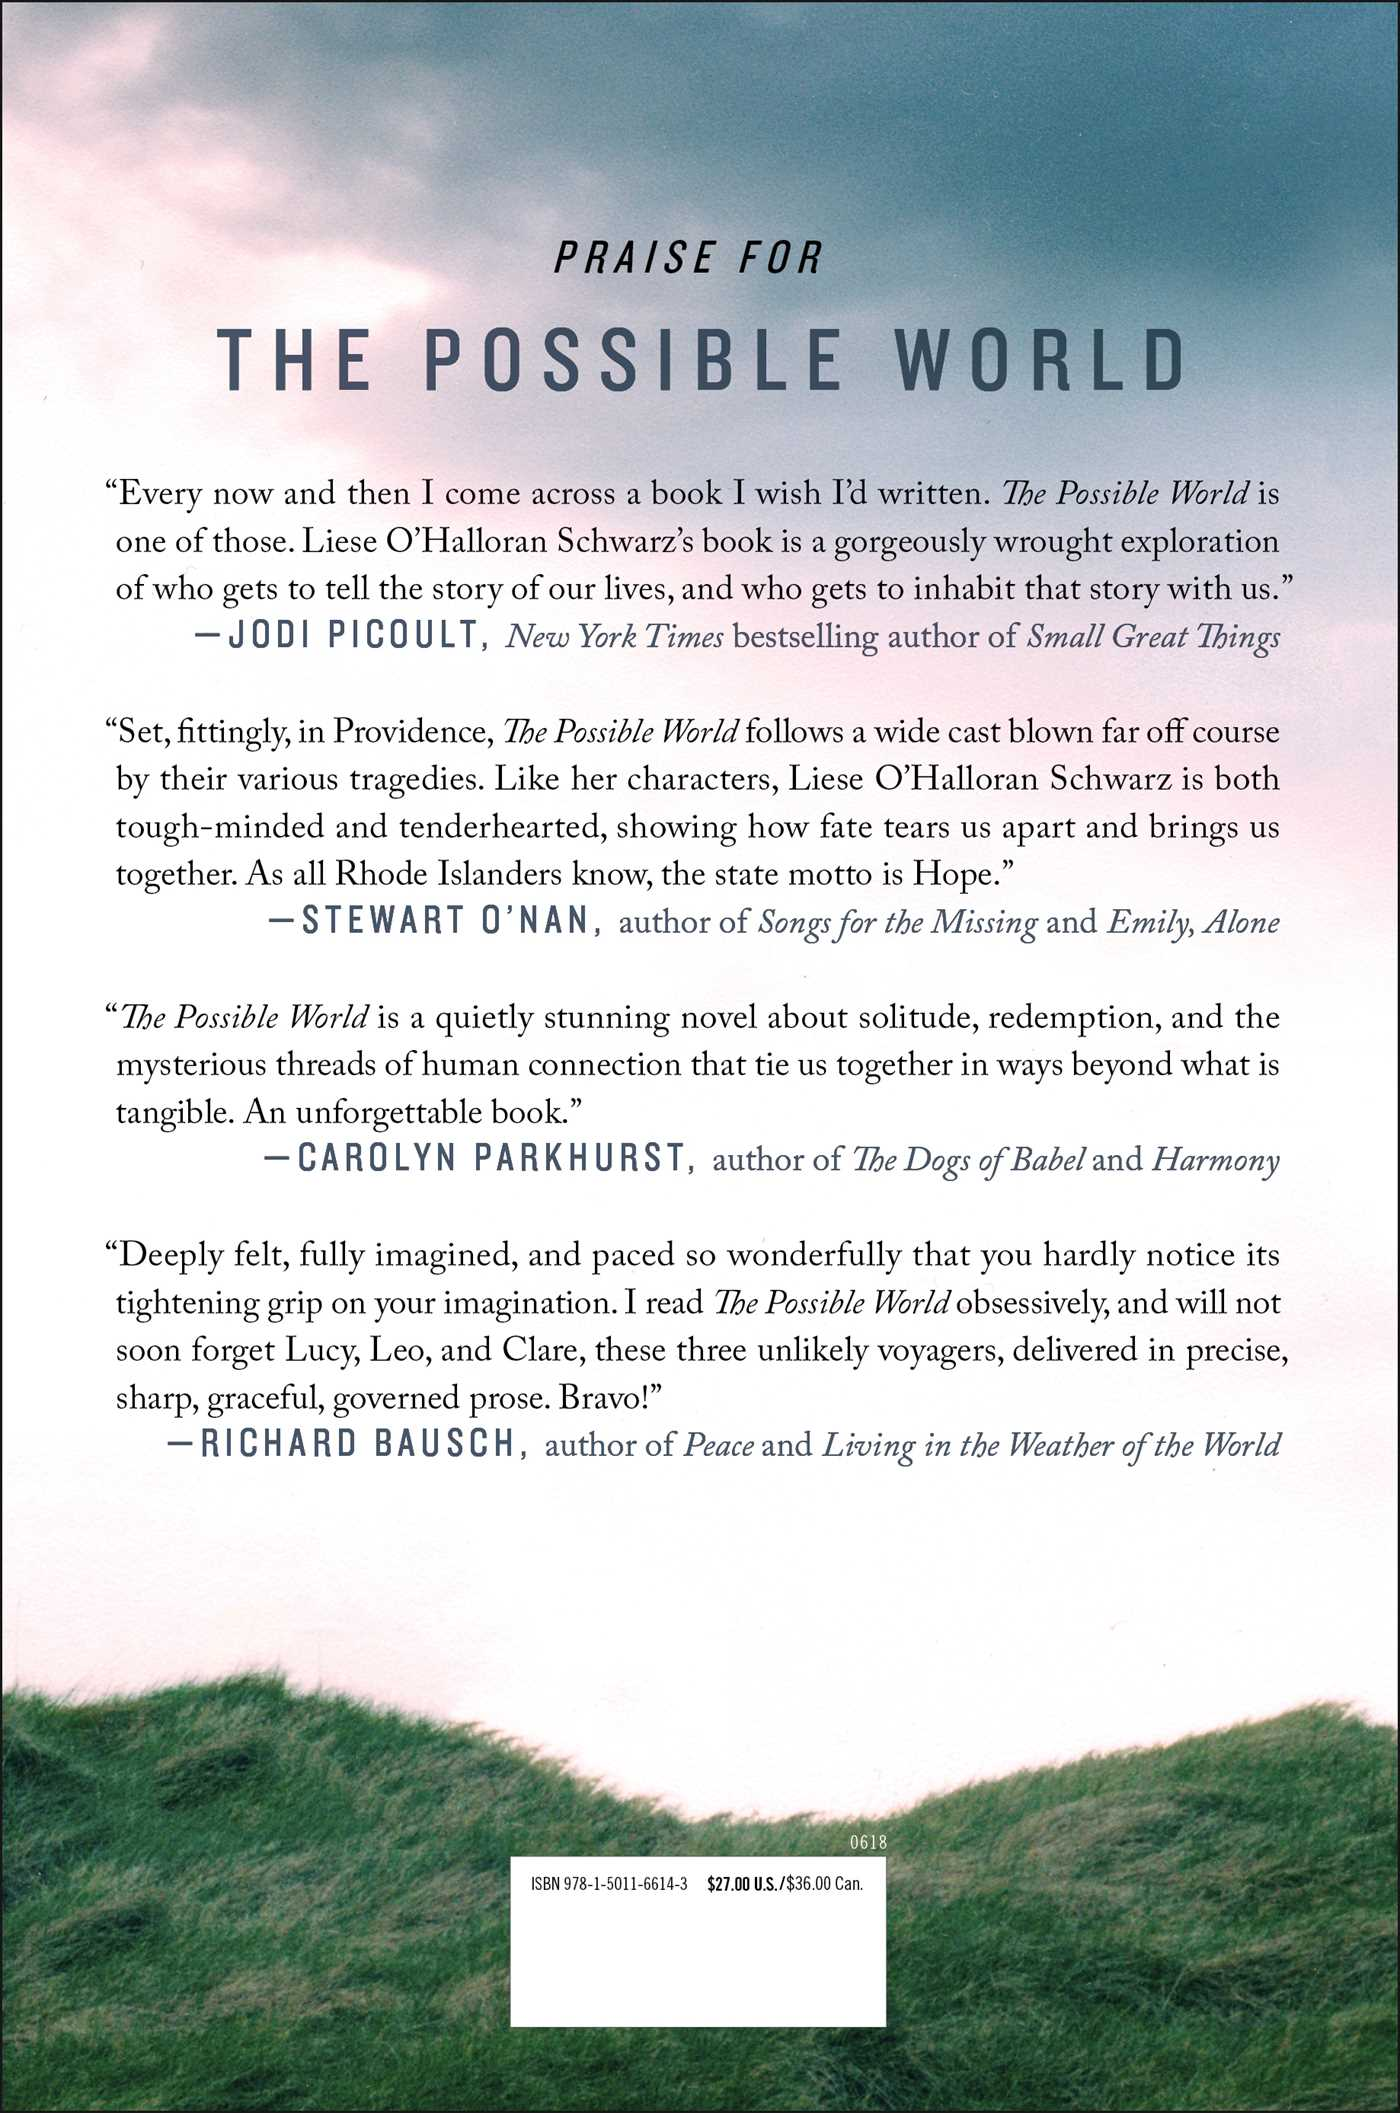 The possible world 9781501166143 hr back